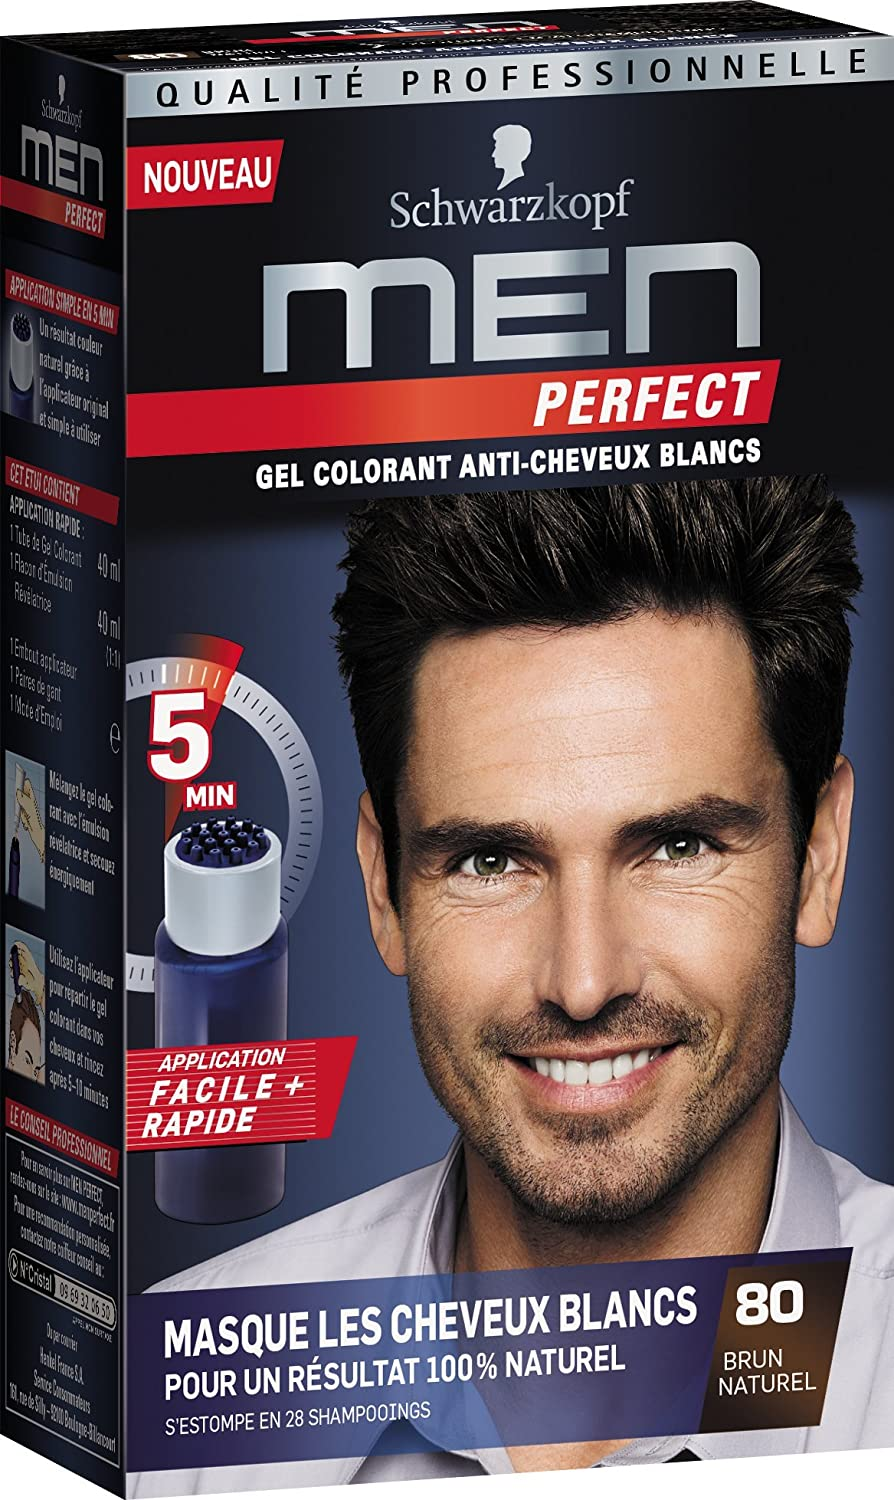 schwarzkopf men perfect gel colorant anti cheveux blancs brun naturel 80 amazonfr hygine et soins du corps - Gel Colorant Cheveux Homme